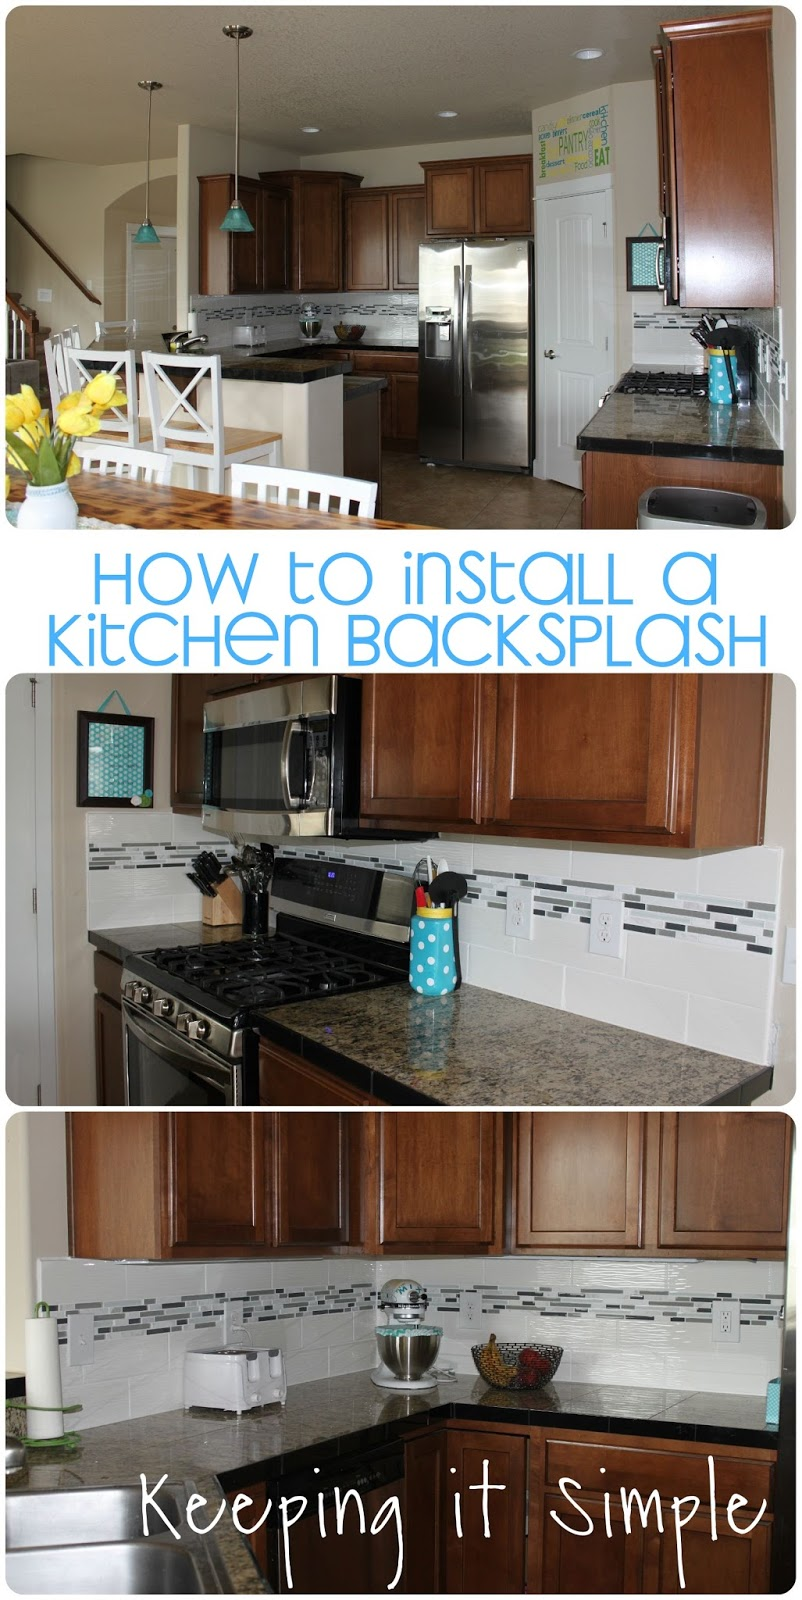 How to Install a Kitchen Backsplash with Wavecrest and ...